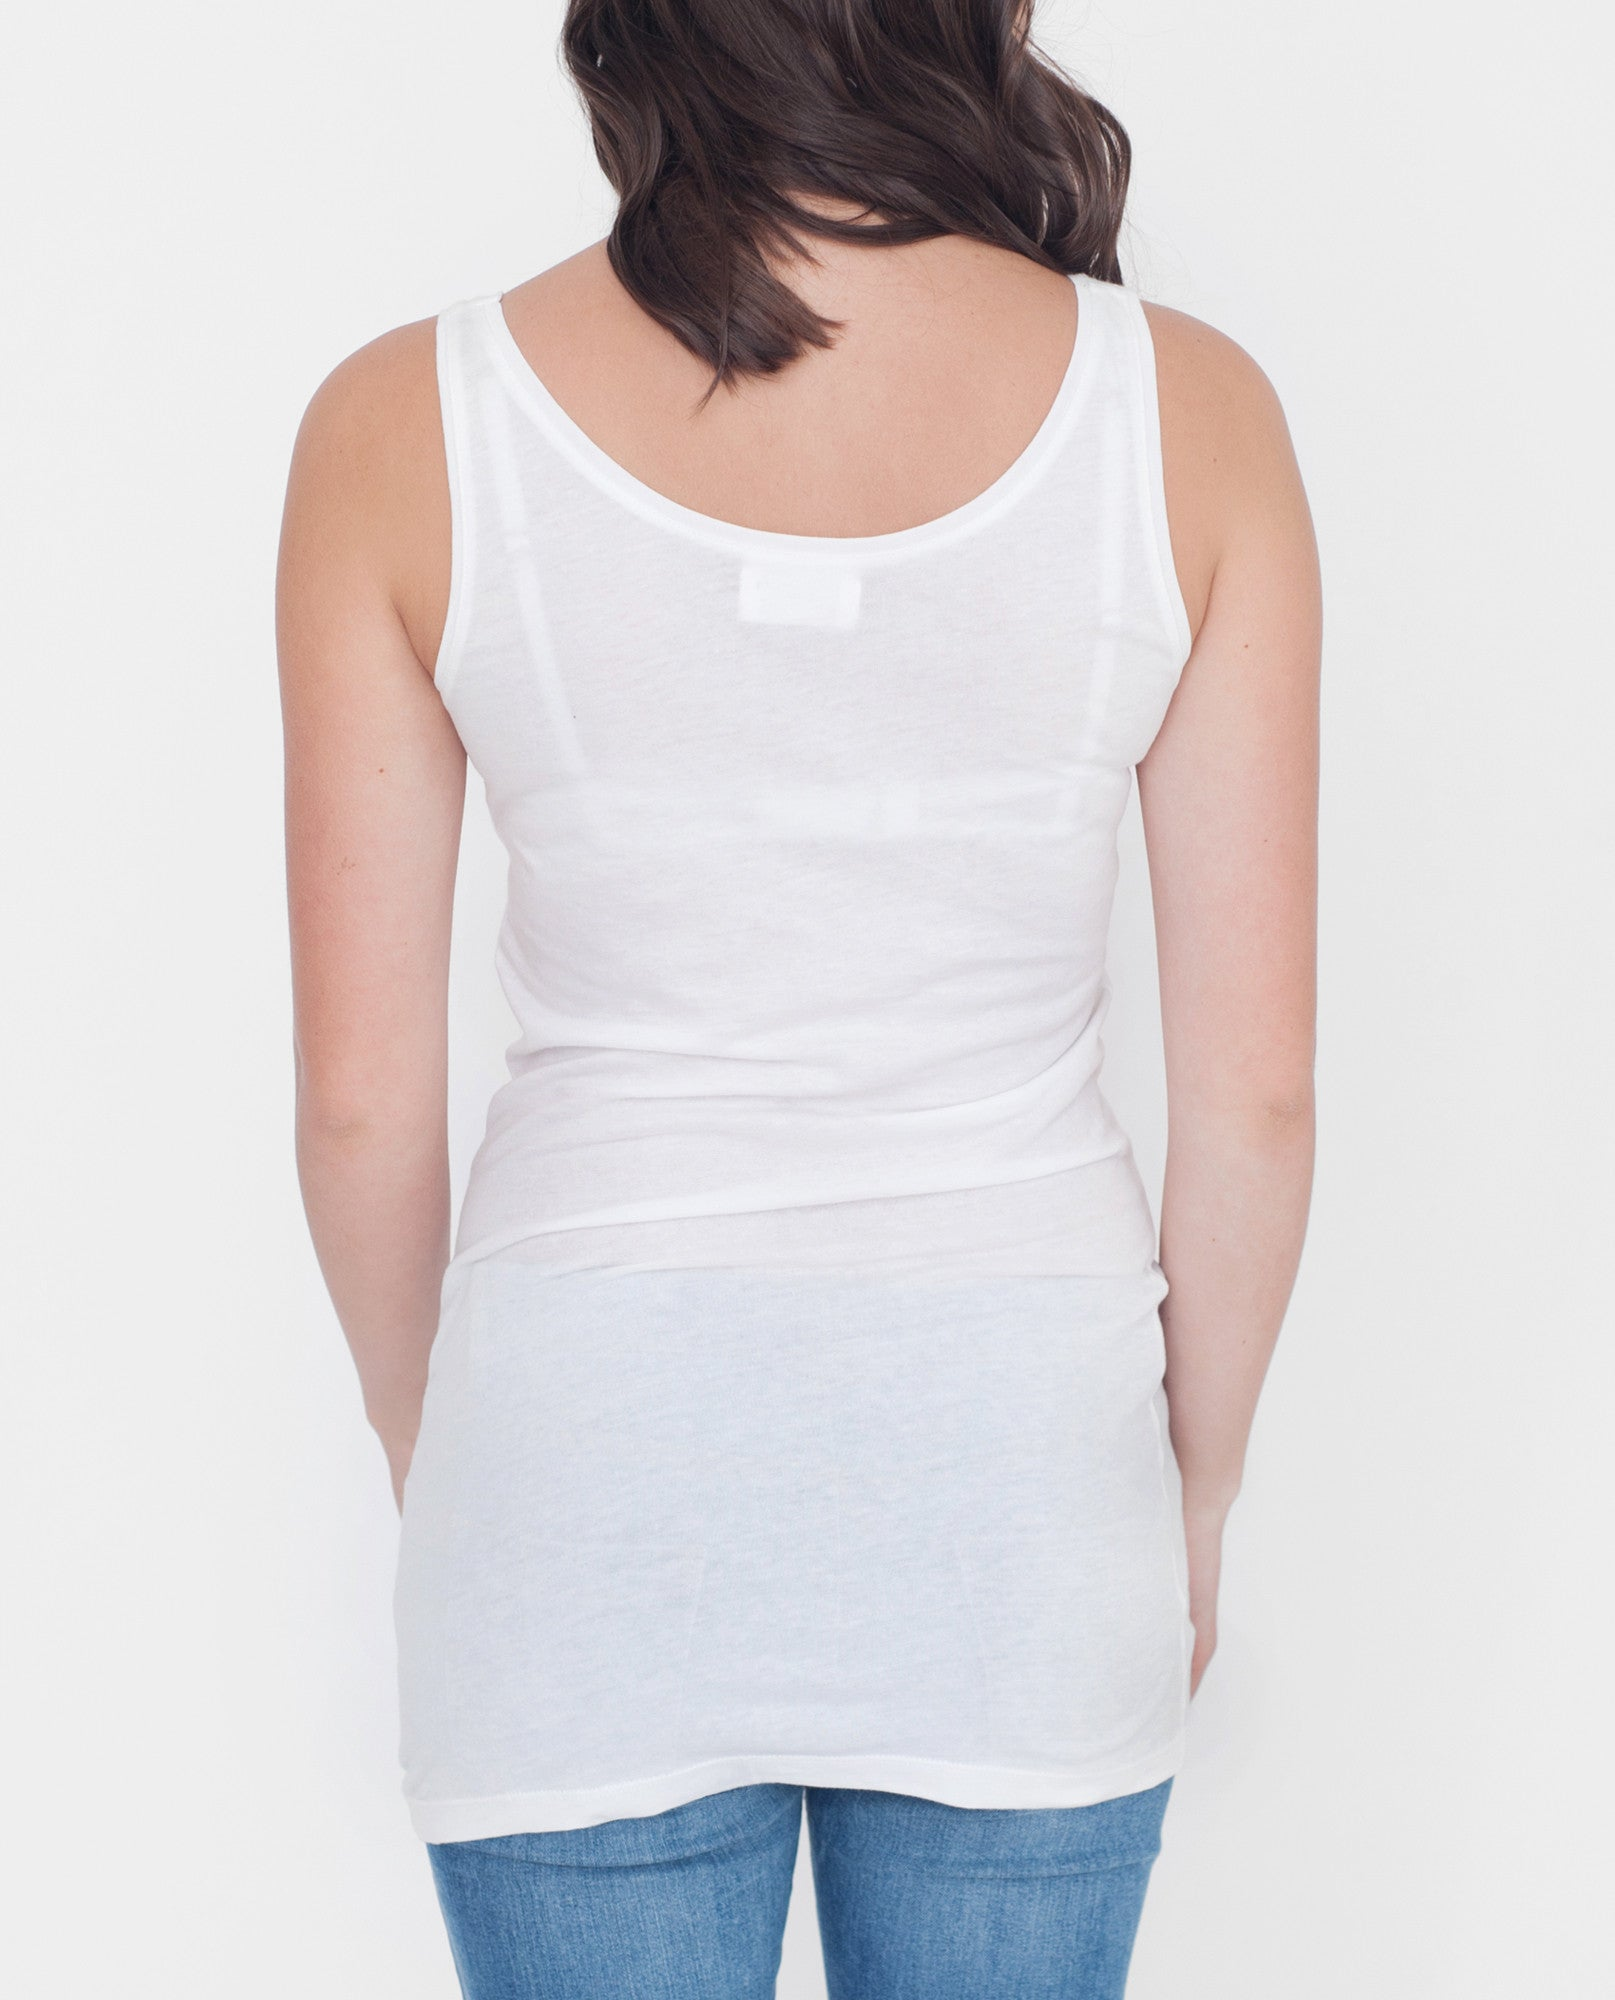 PAISLEY Organic Cotton Vest Top In White